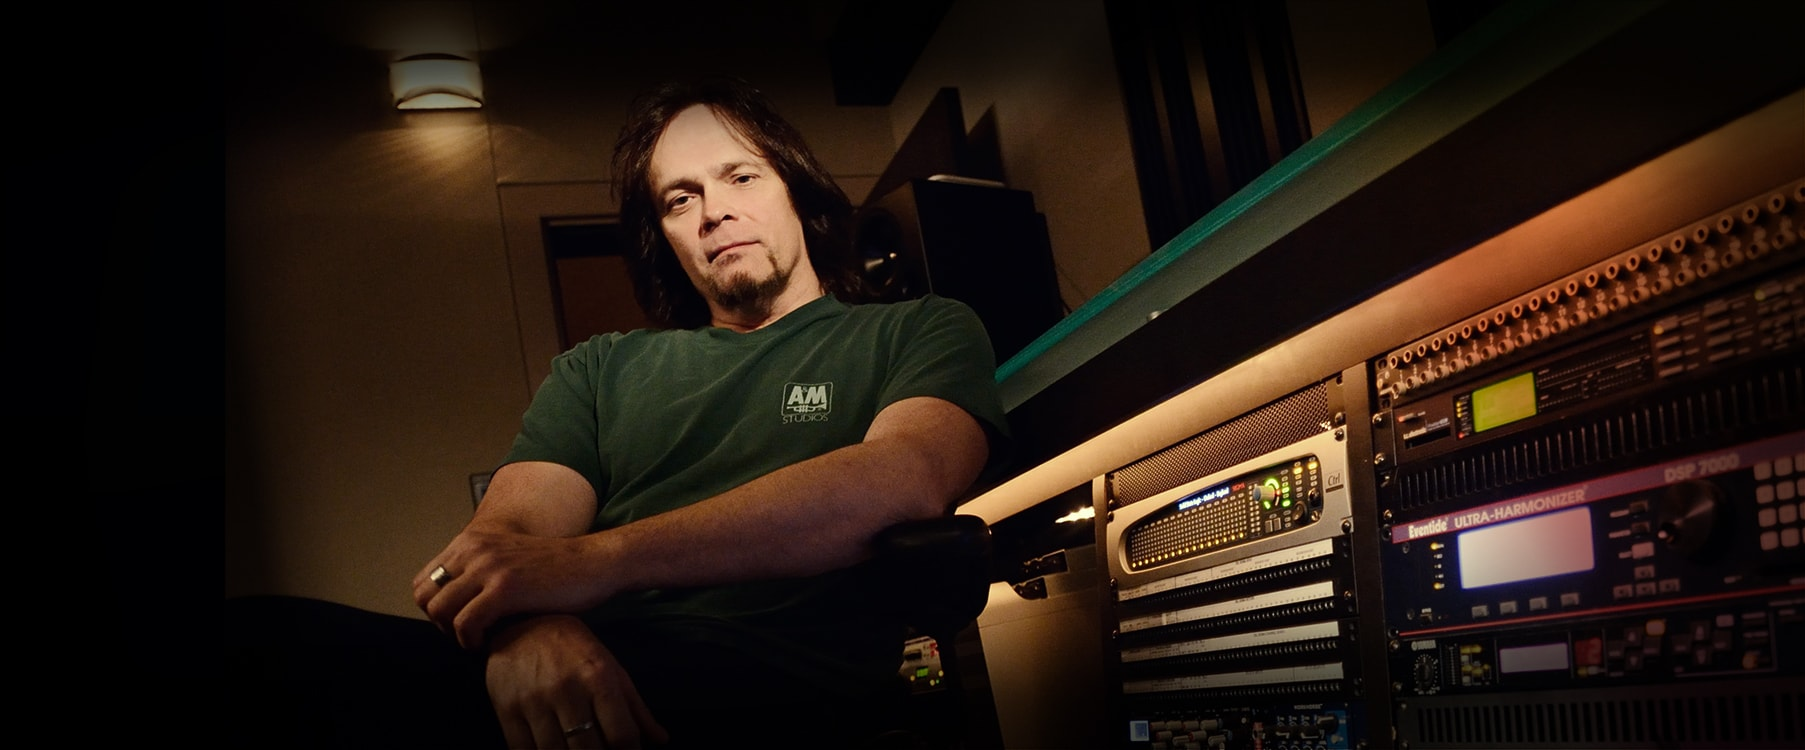 Rich Chycki on Mixing Rush and Dream Theater with UAD Plug-Ins